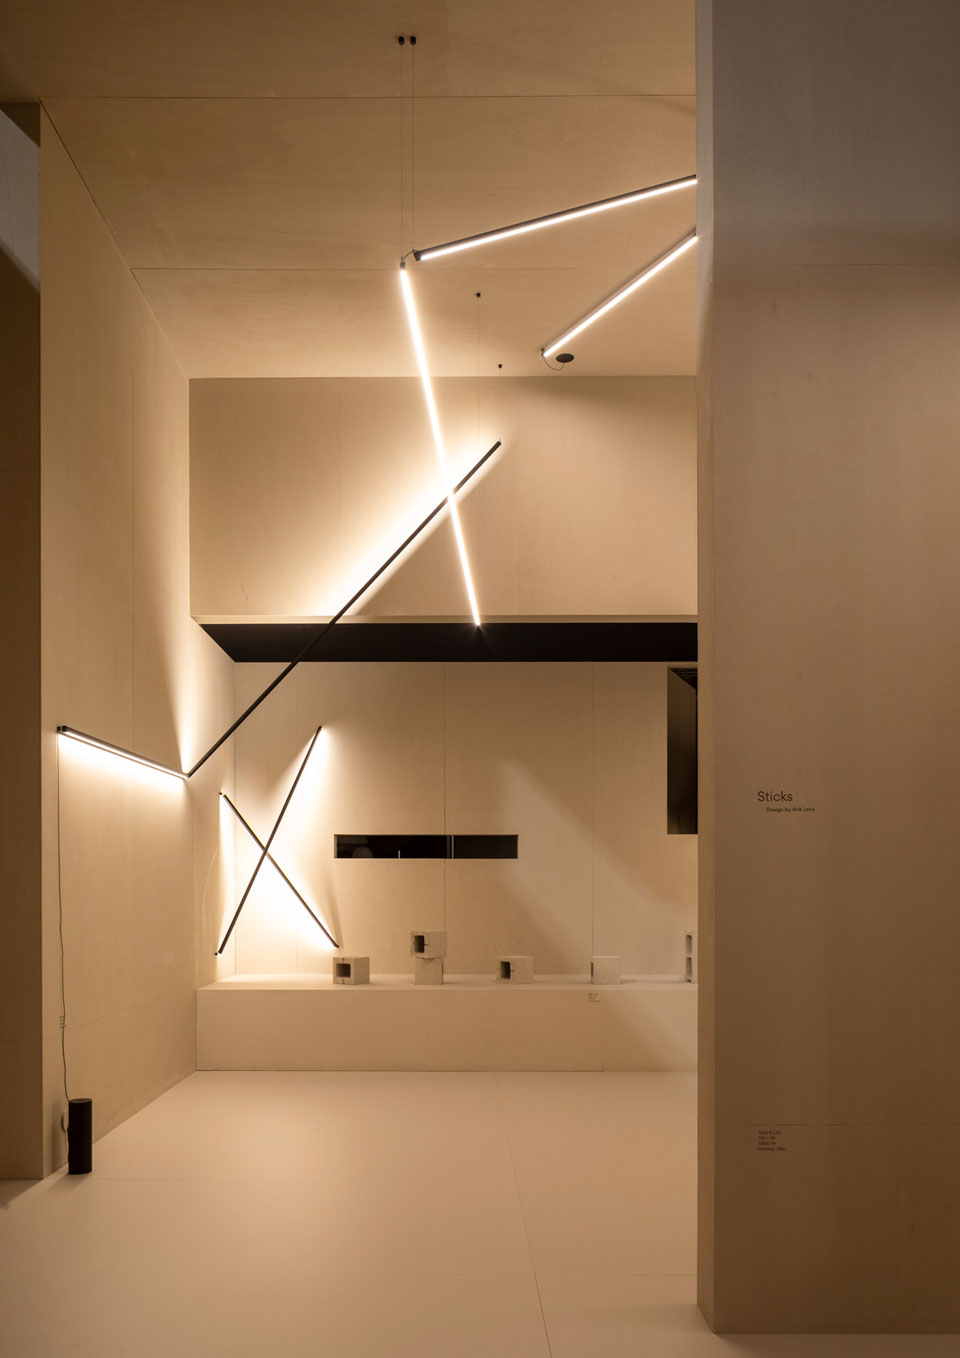 Vibia Stories - Sticks by Arik Levy